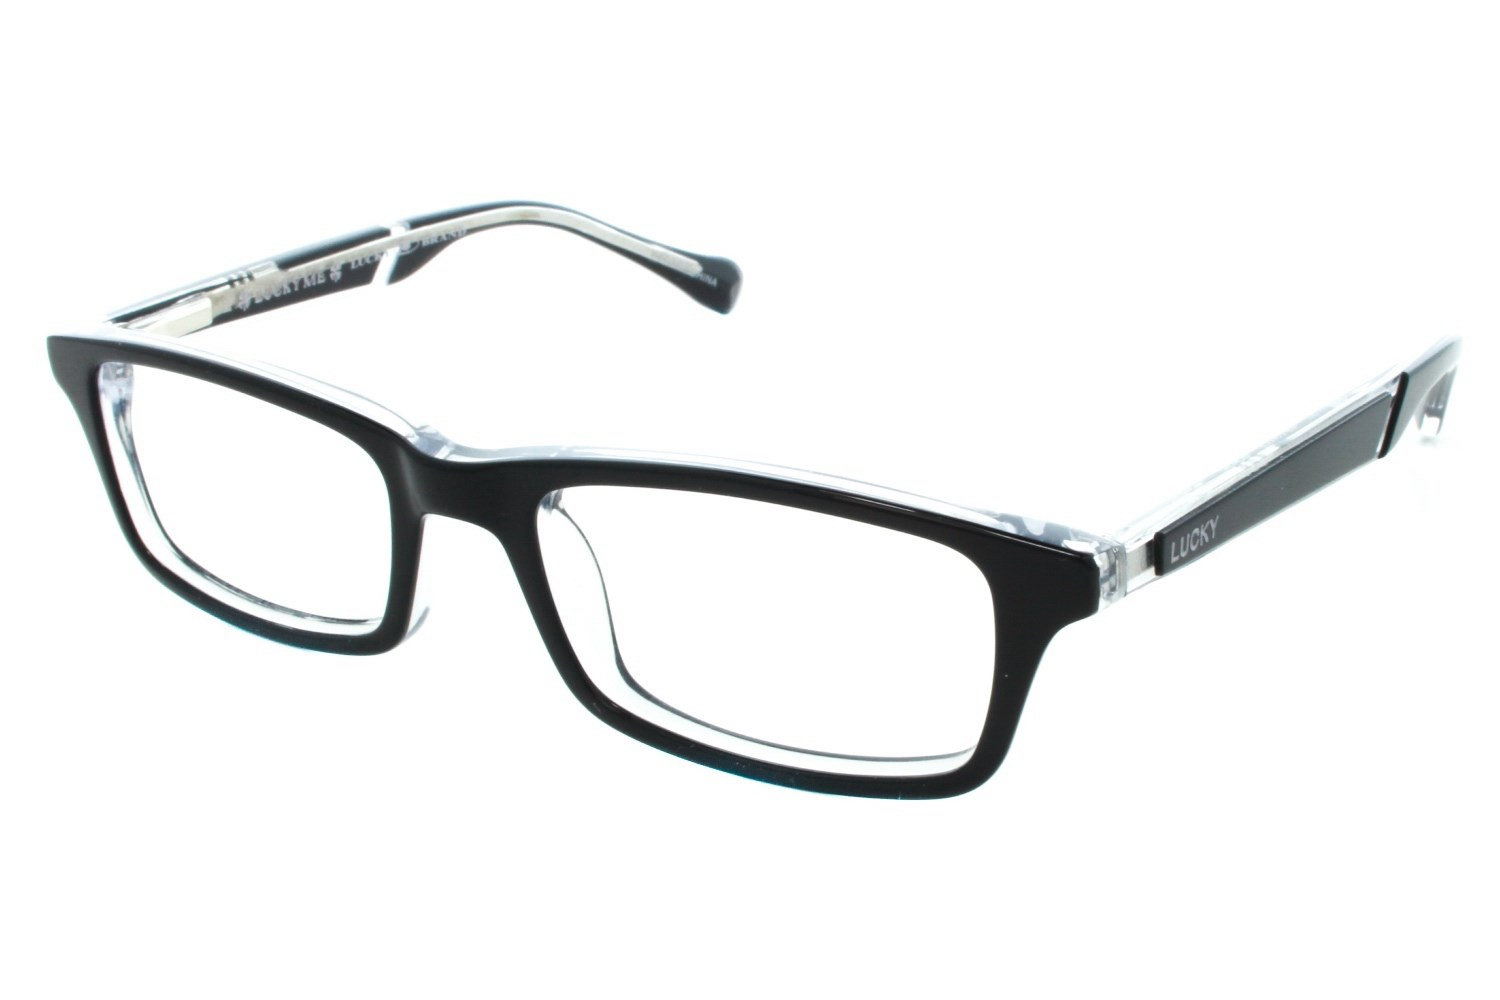 Lucky Double Stitch Small Prescription Eyeglasses Frames